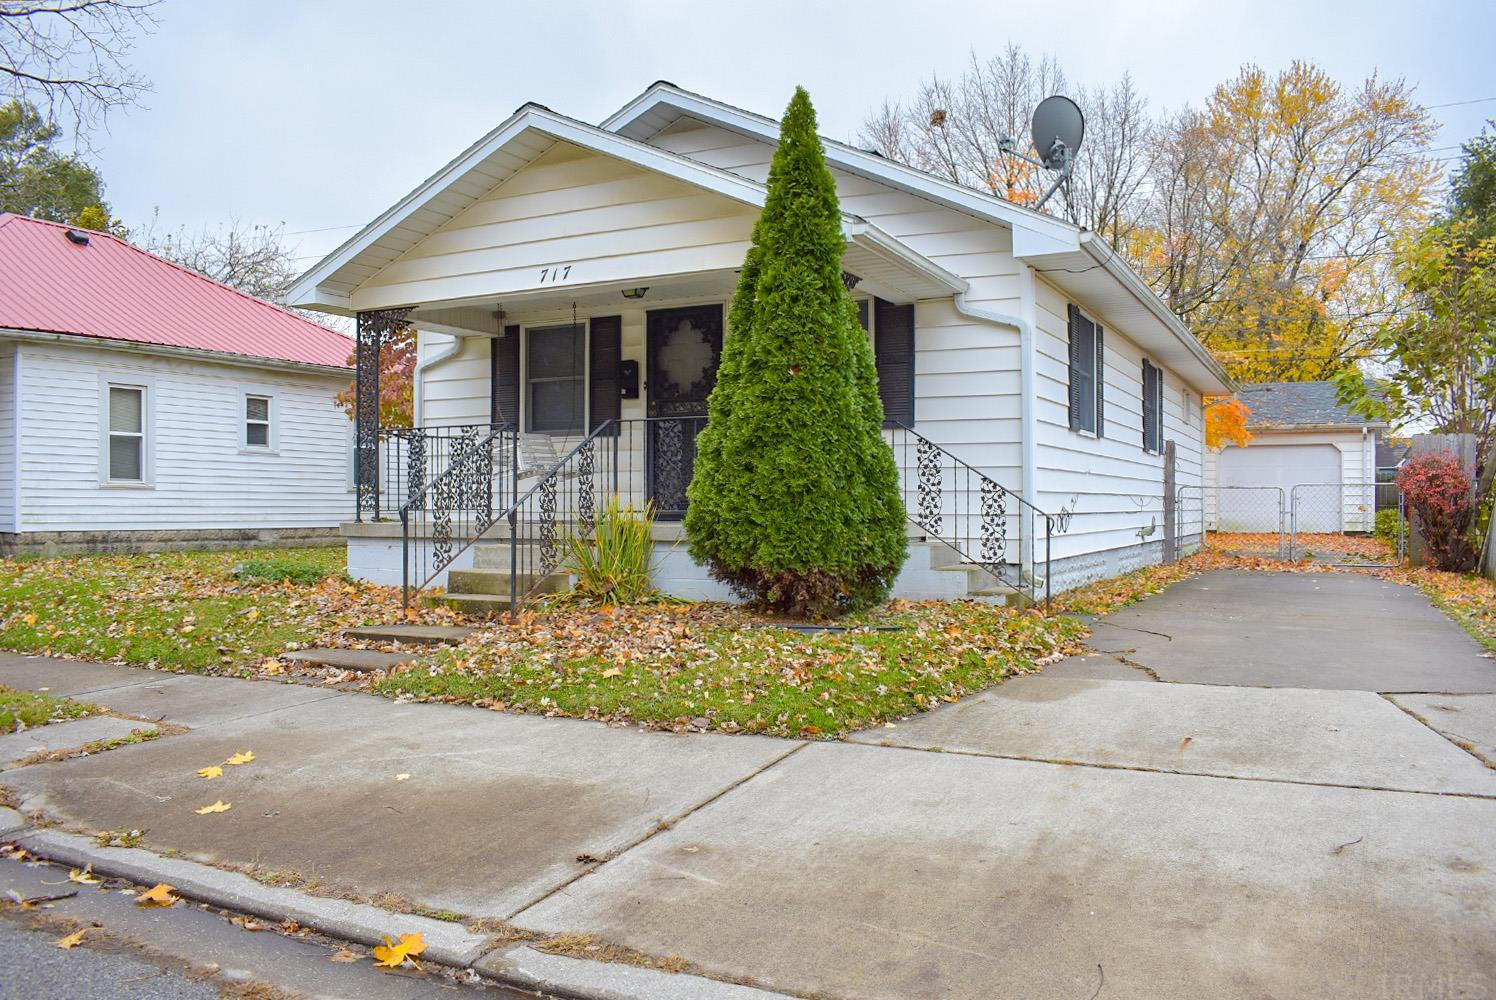 717 S Waugh Street, Kokomo, IN 46901